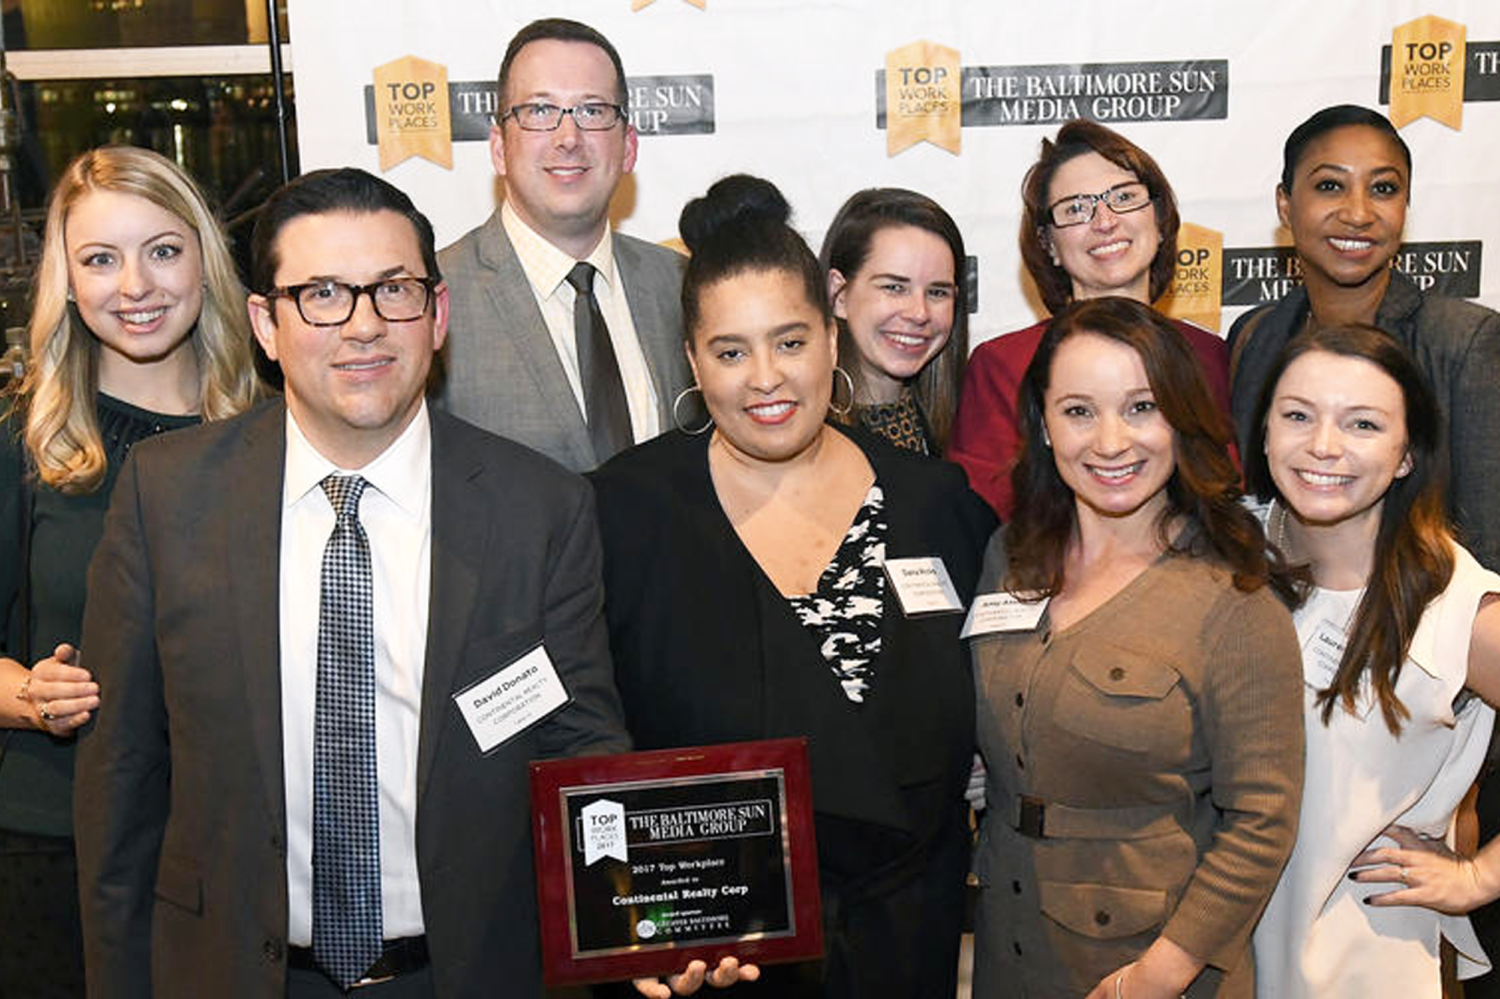 Baltimore Sun Top Workplaces Awards